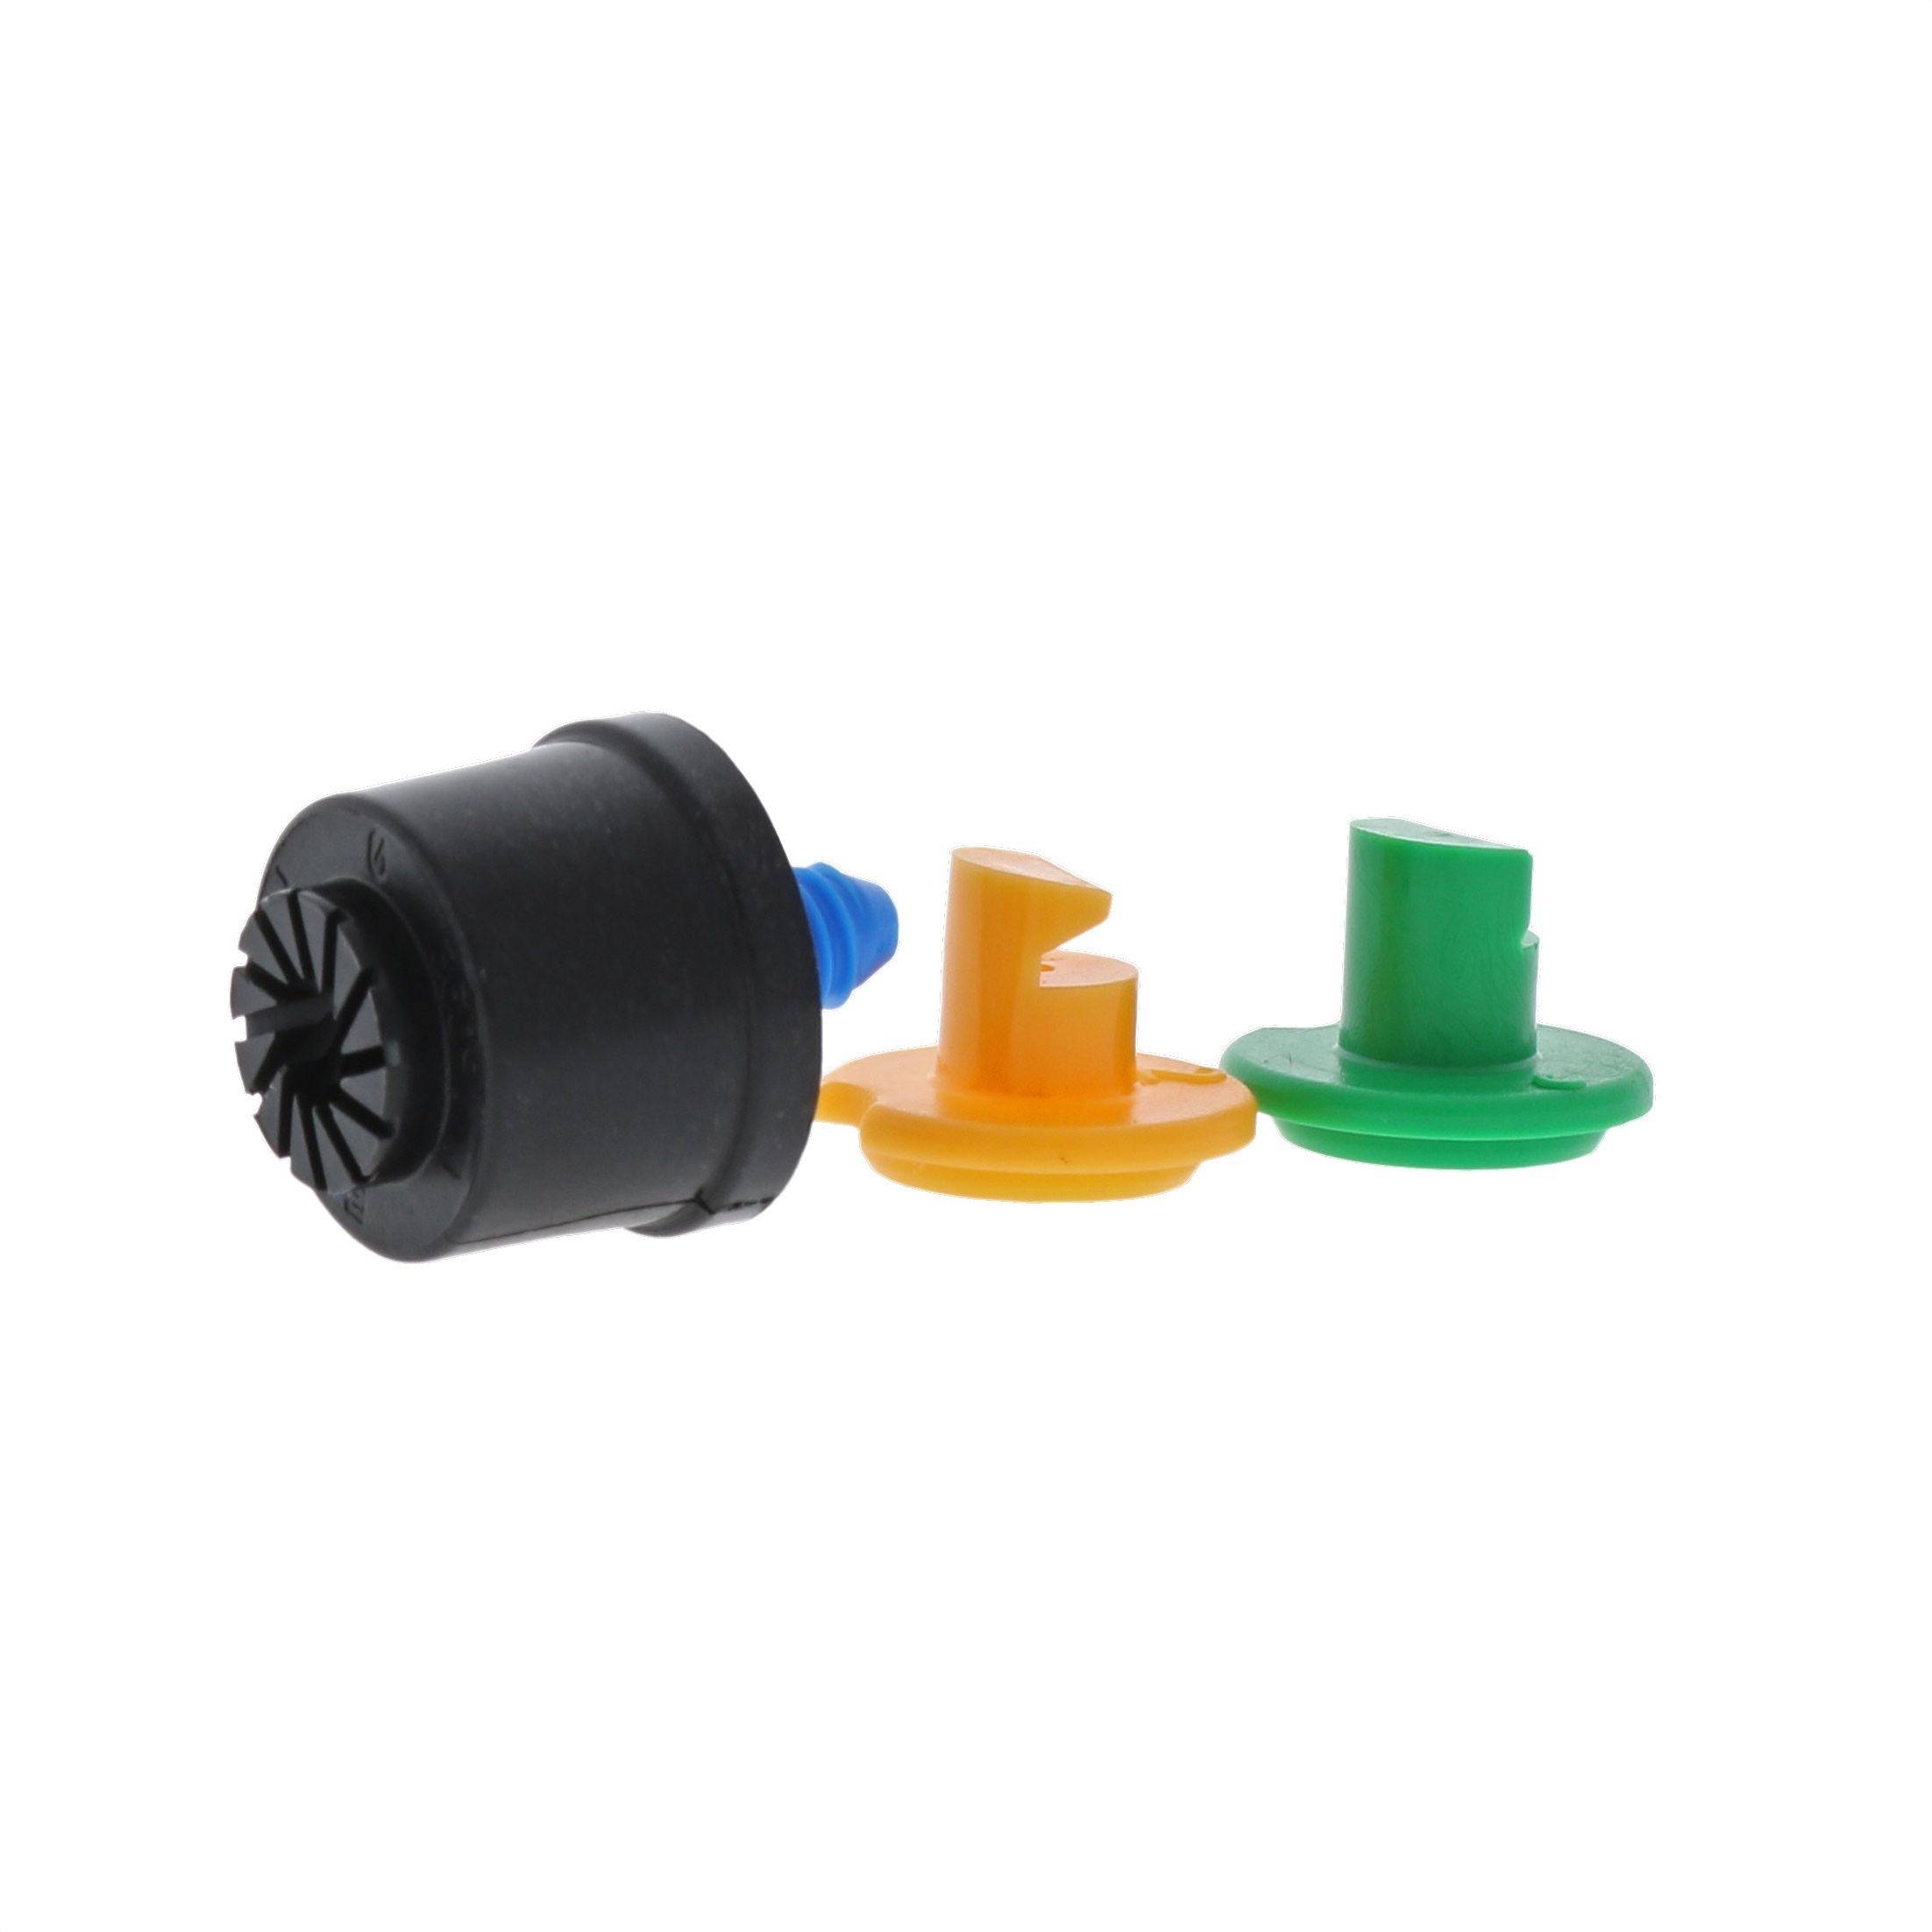 Dig Drip Irrigation Jet Sprayer on 10 32 Threads w  Replaceable Heads-3 pack by Dig